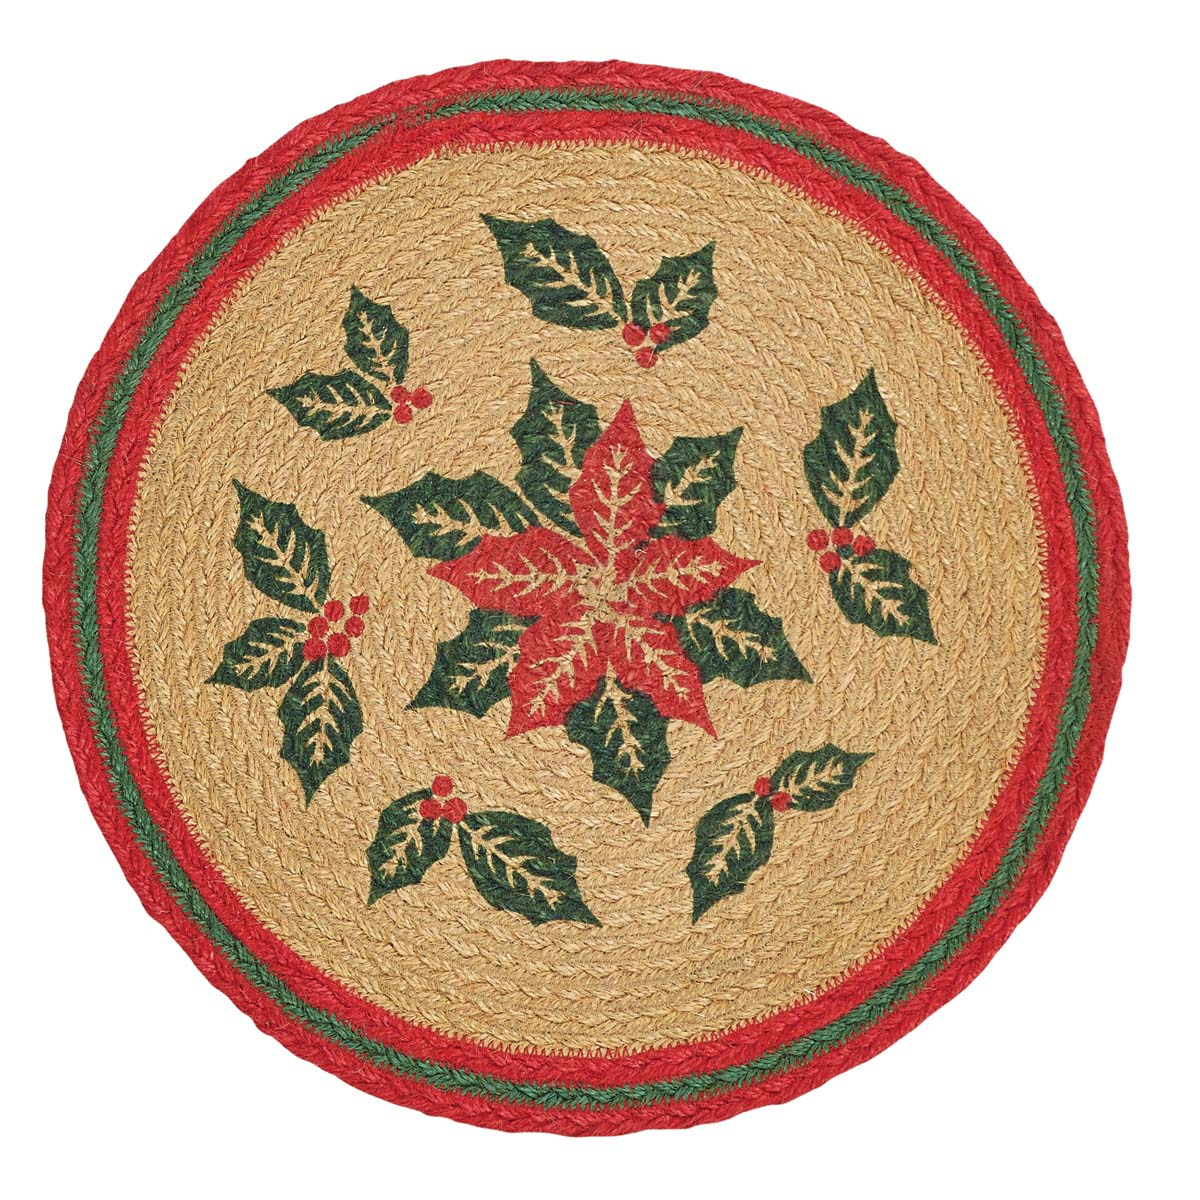 Natural Tan Seasonal Decor Poinsettia Jute Stenciled Floral   Flower Round Tablemat Set of 6 by Ashton & Willow